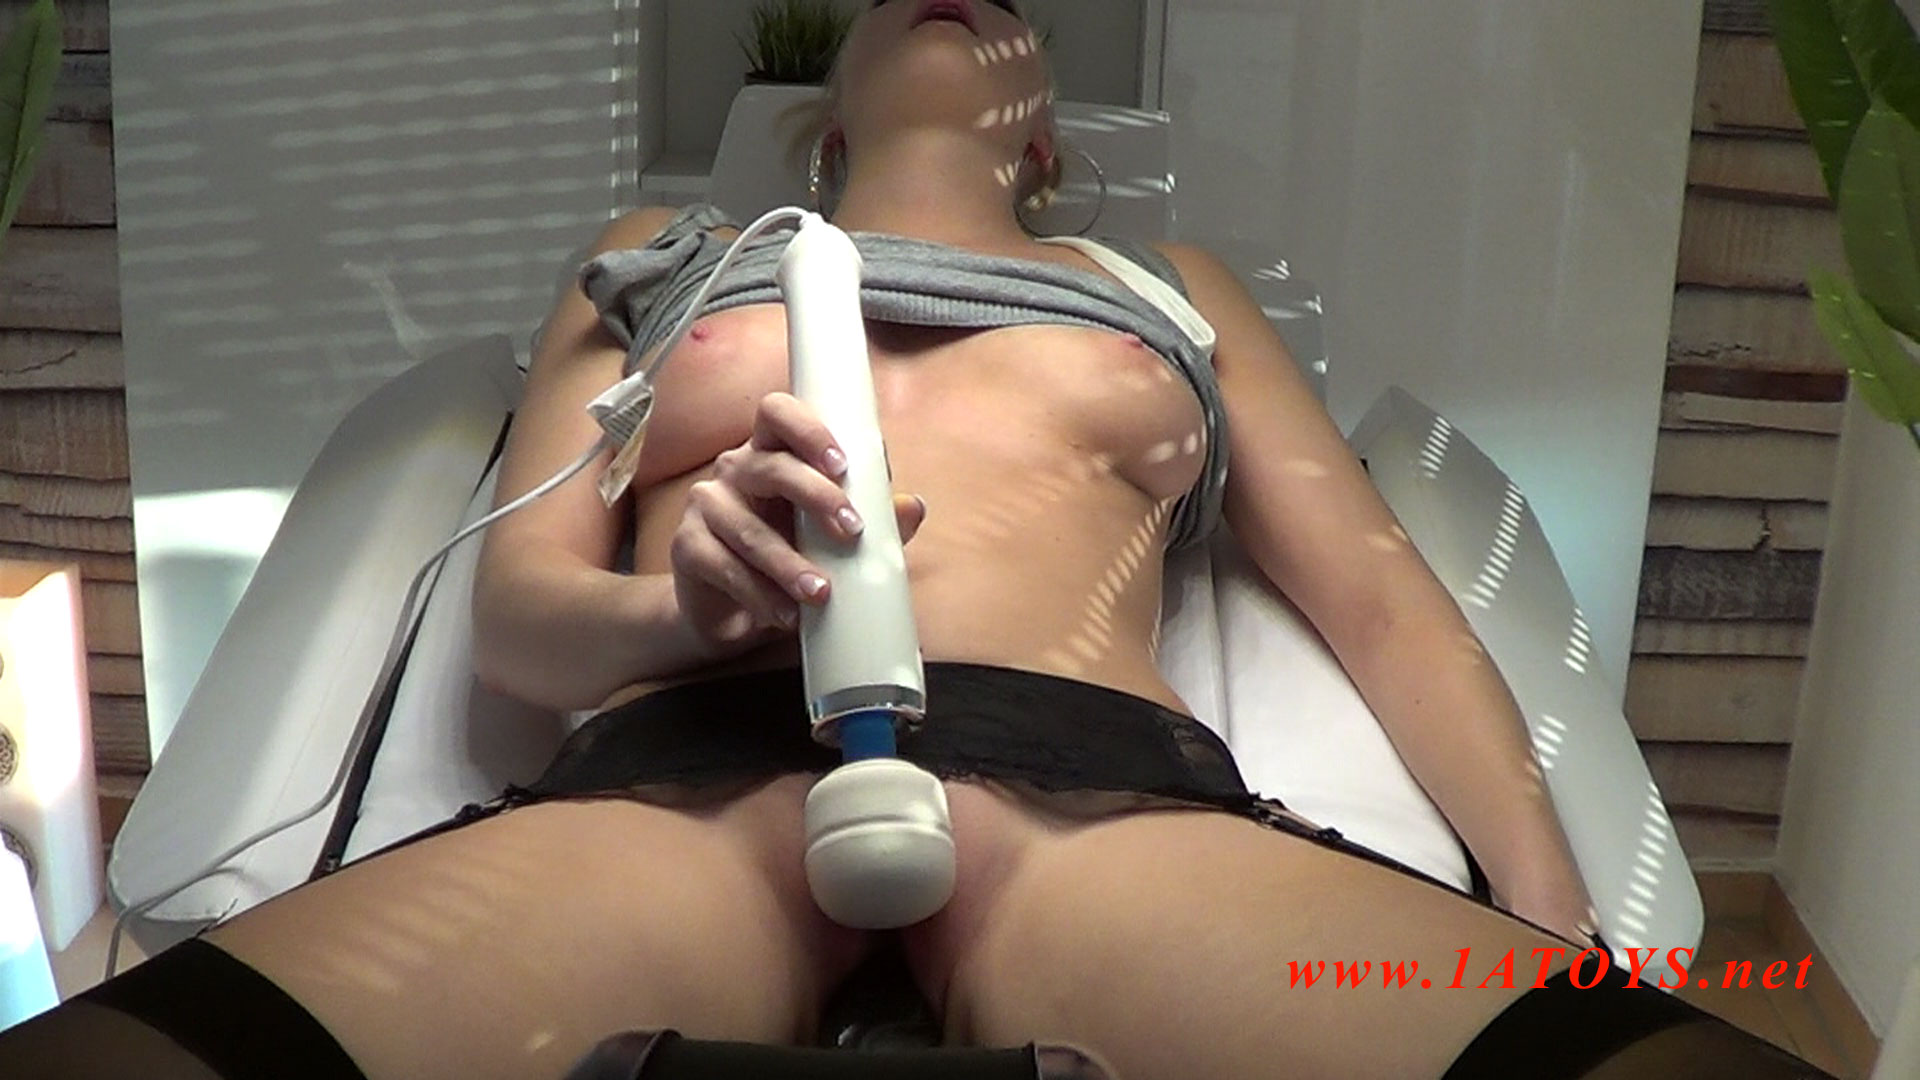 squirt orgasm.com Sep 2016  The secrets of what squirting is really like, revealed.